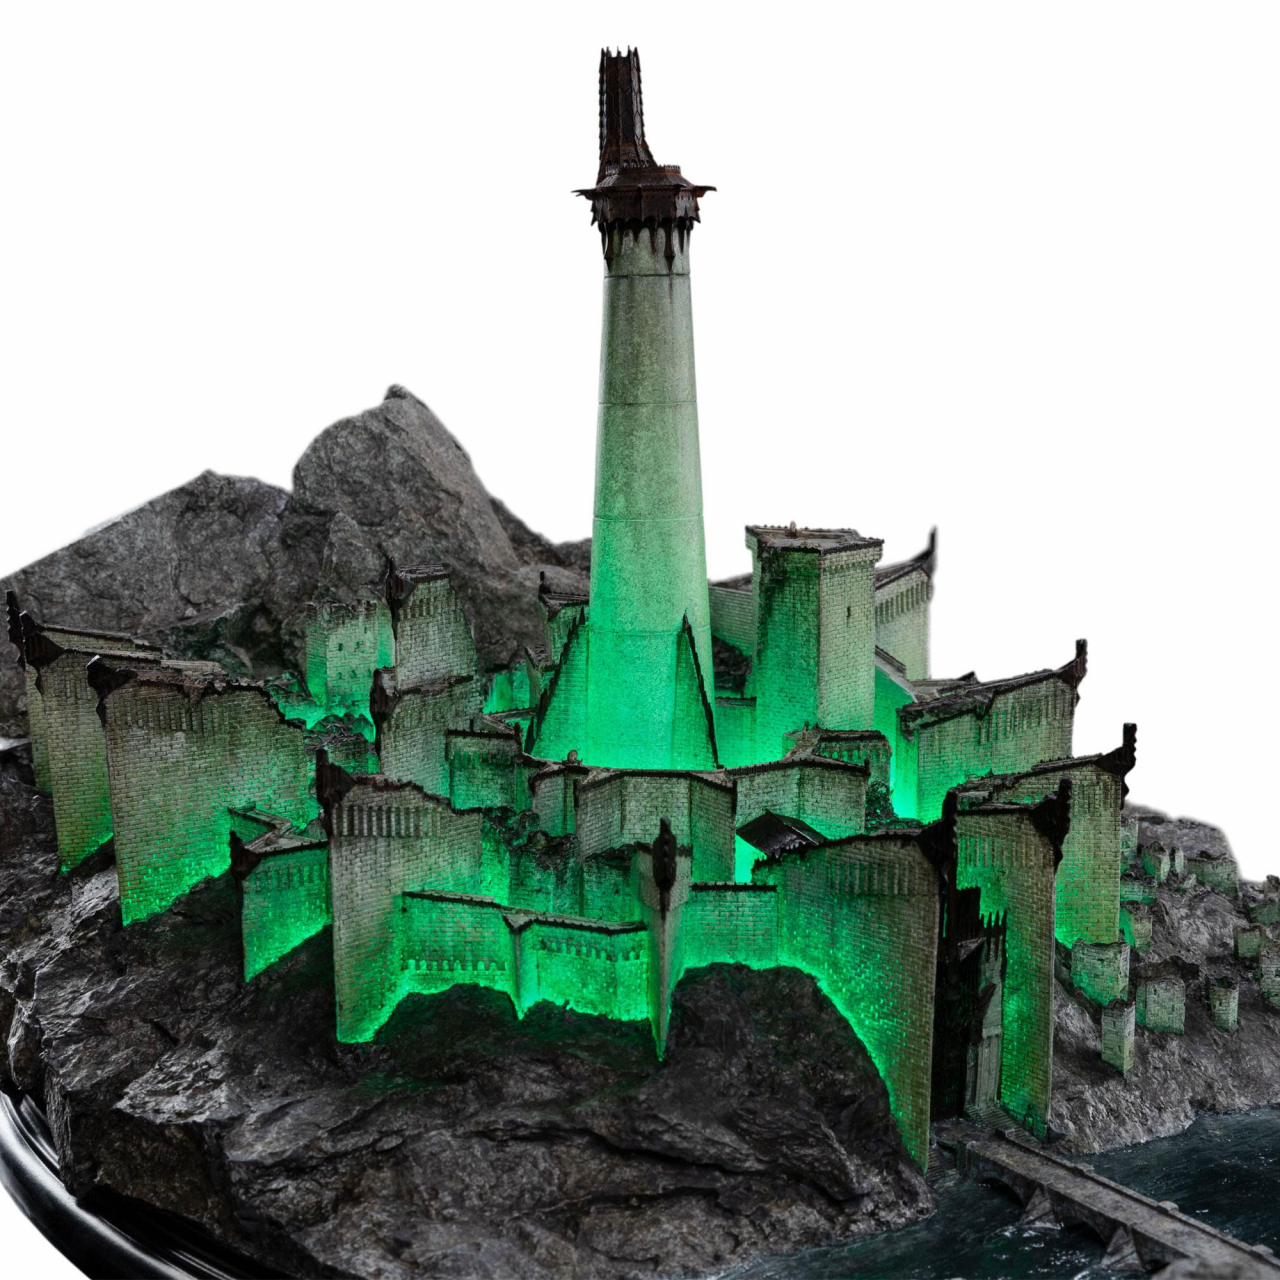 Lord of the Rings The Return of the King Statue Minas Morgul Environment 43 cm